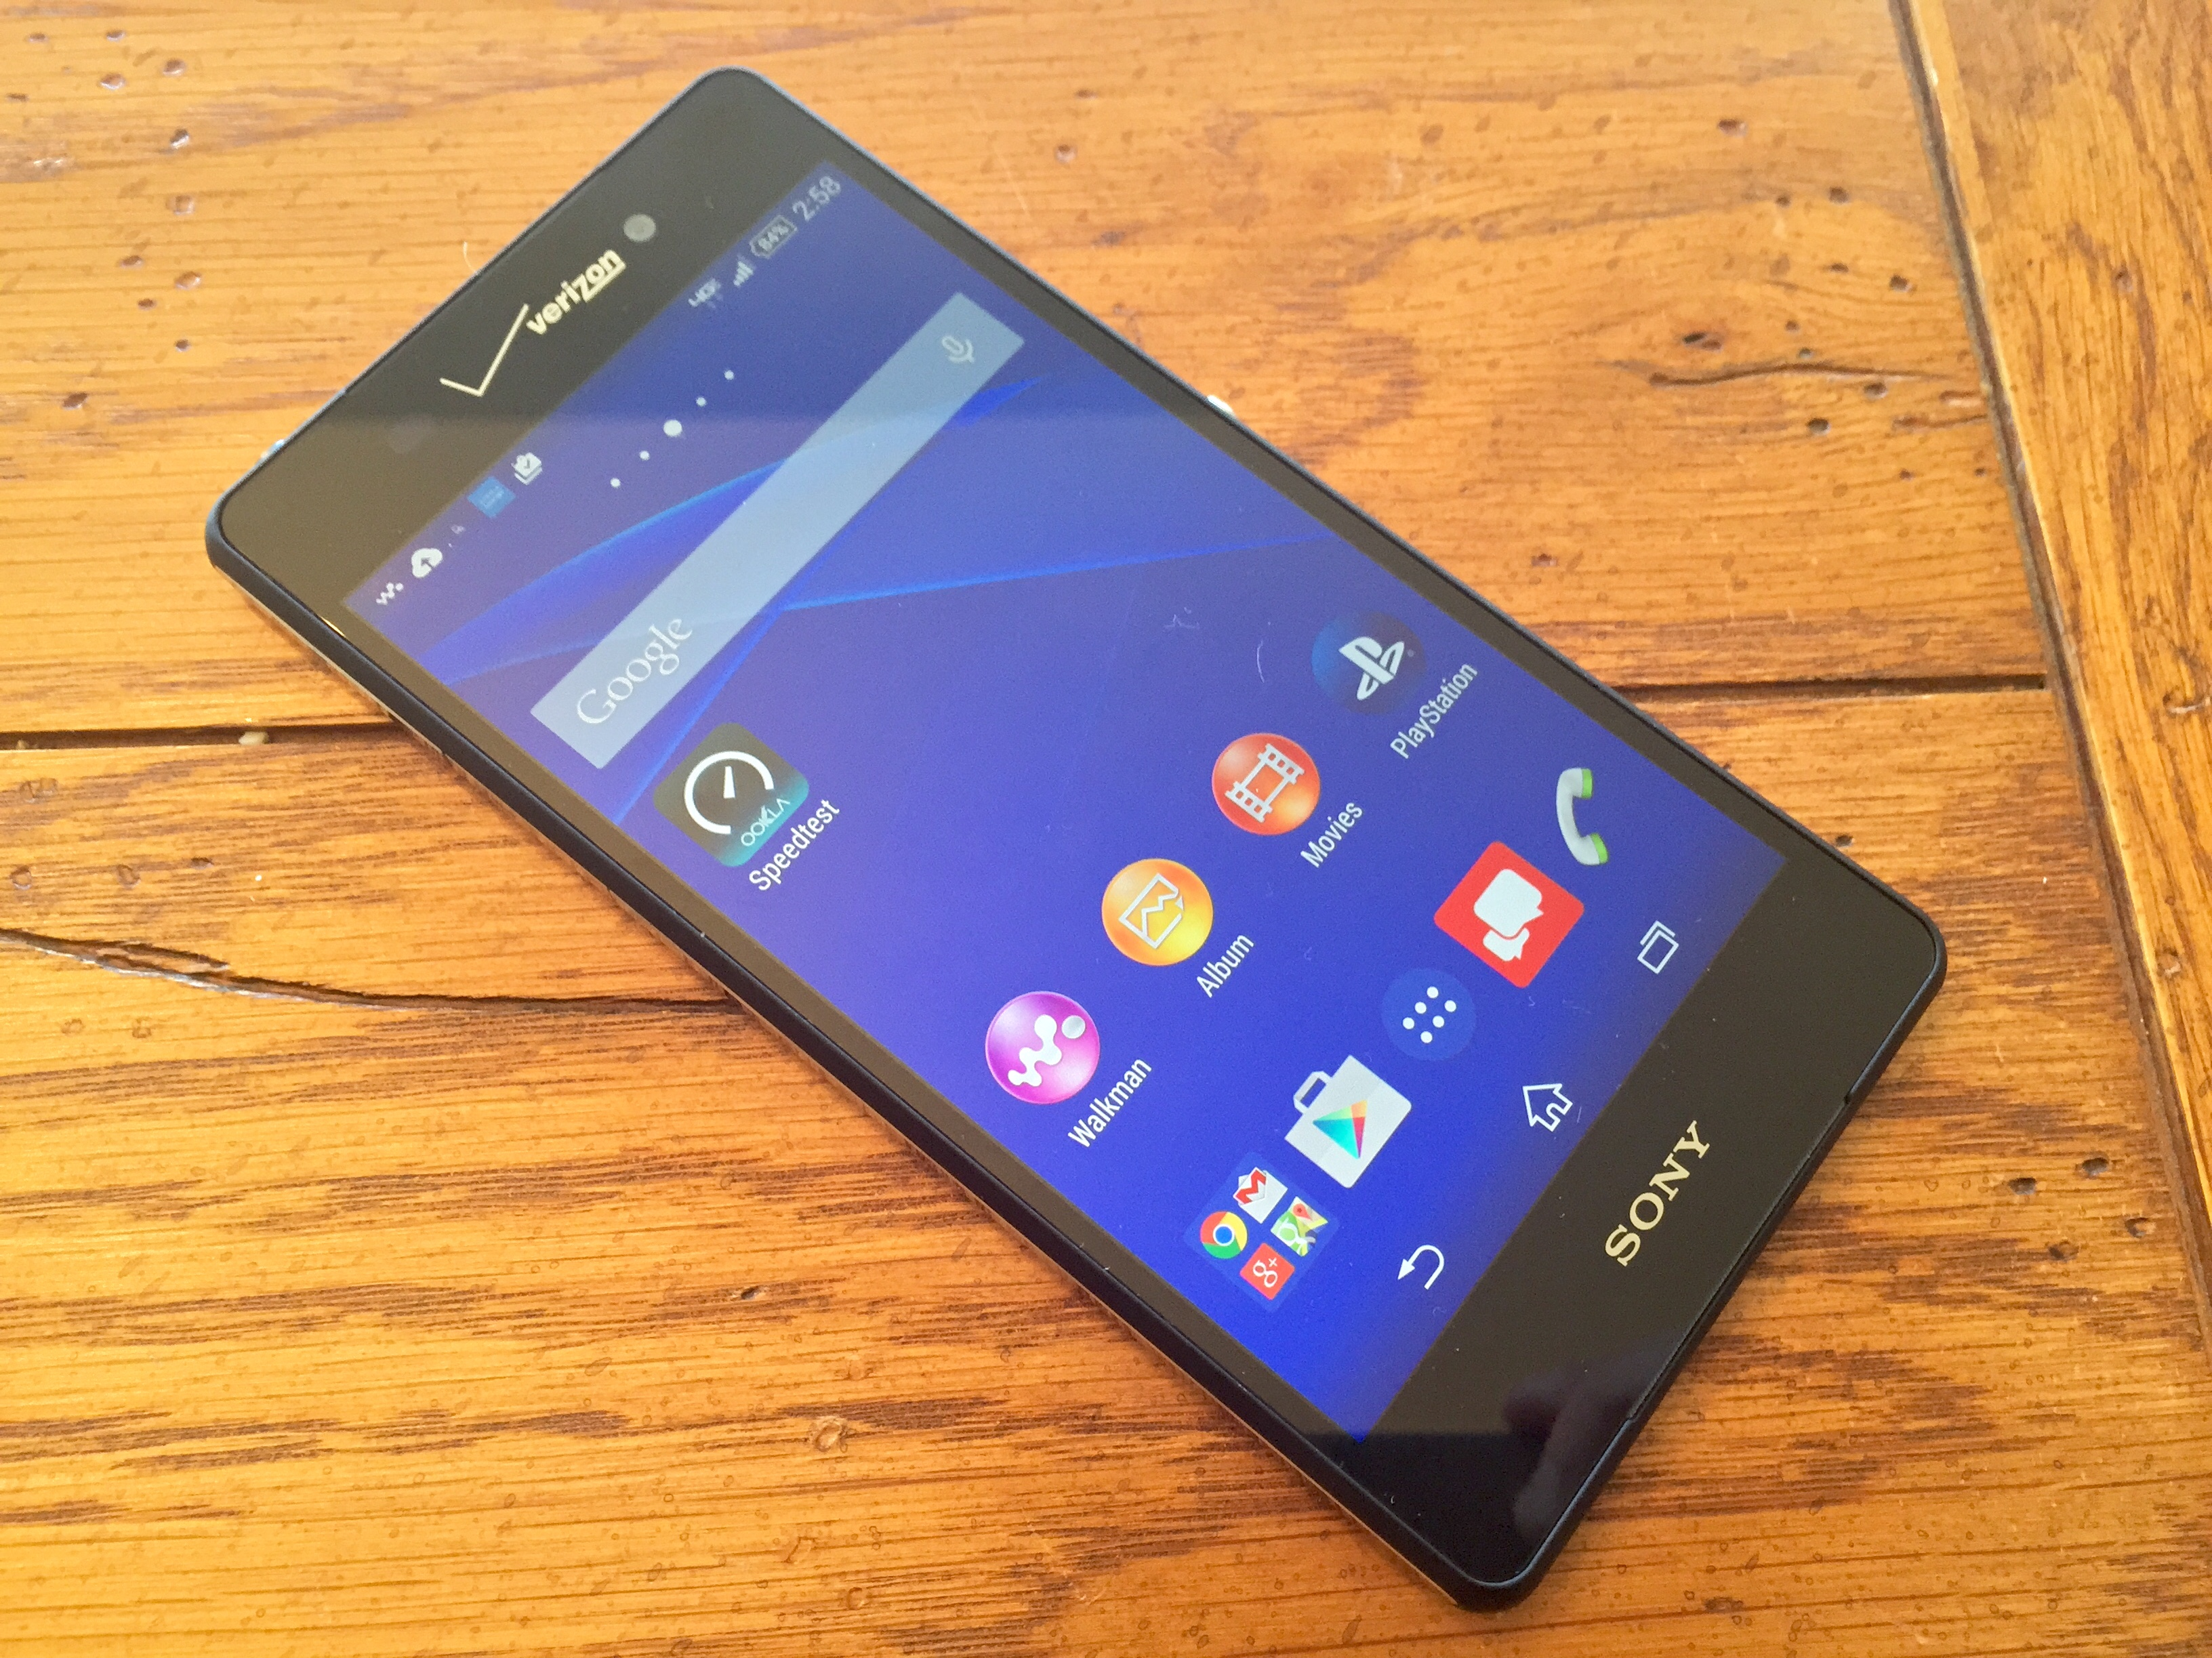 Sony Xperia Z4 specs leak, suggest modest improvements | Gigaom